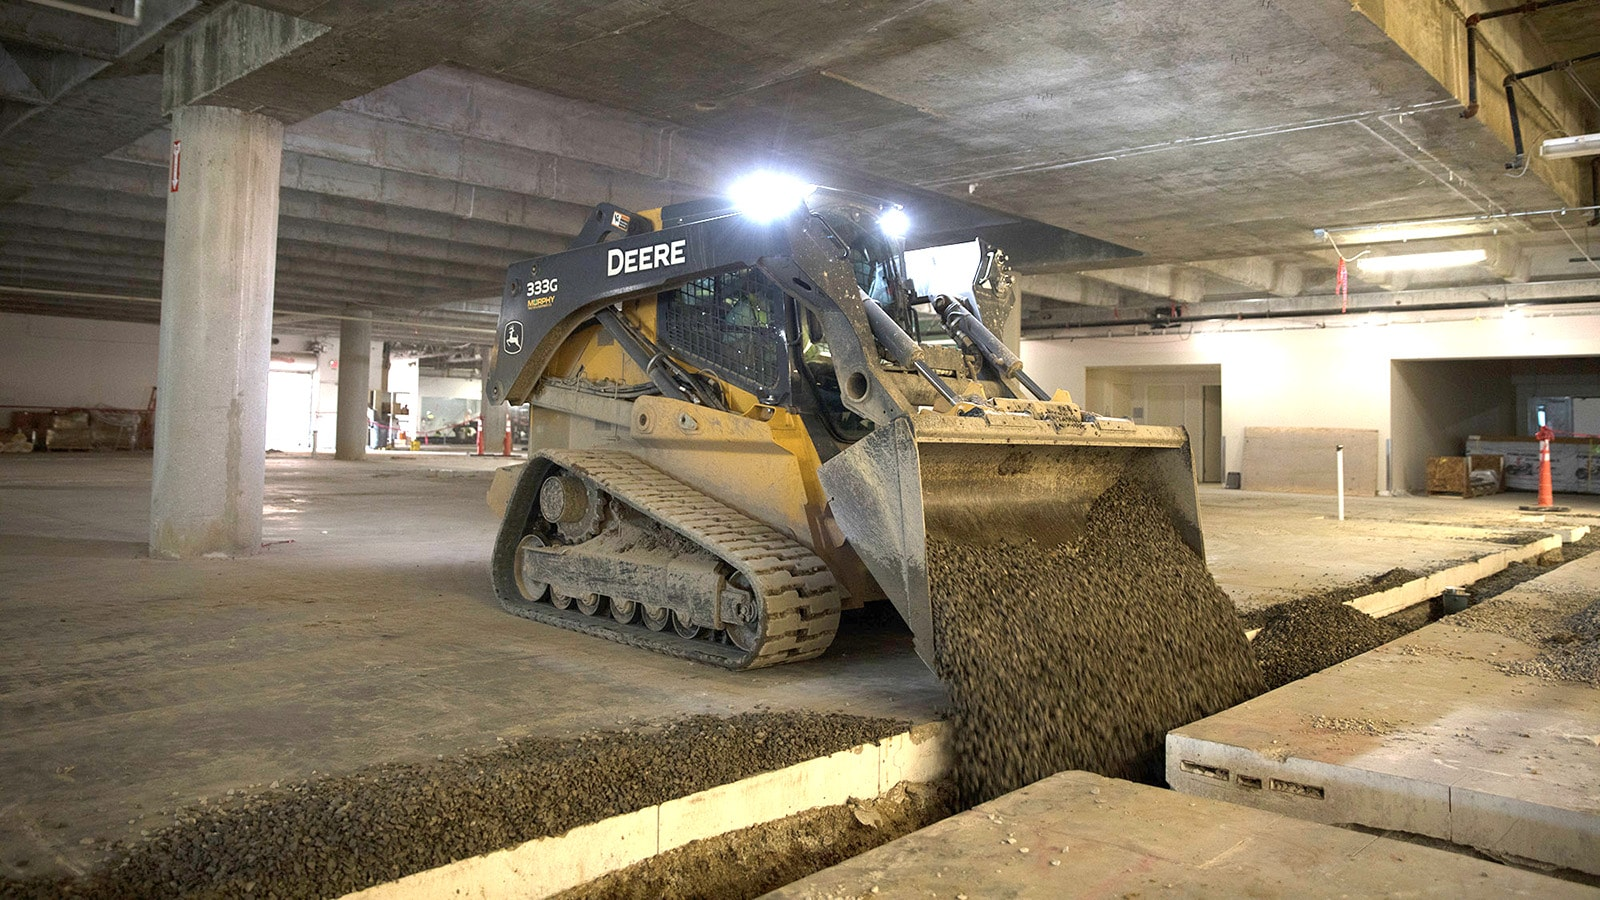 333G Compact Track Loader dumps a load of dirt into a gap in a parking garage site